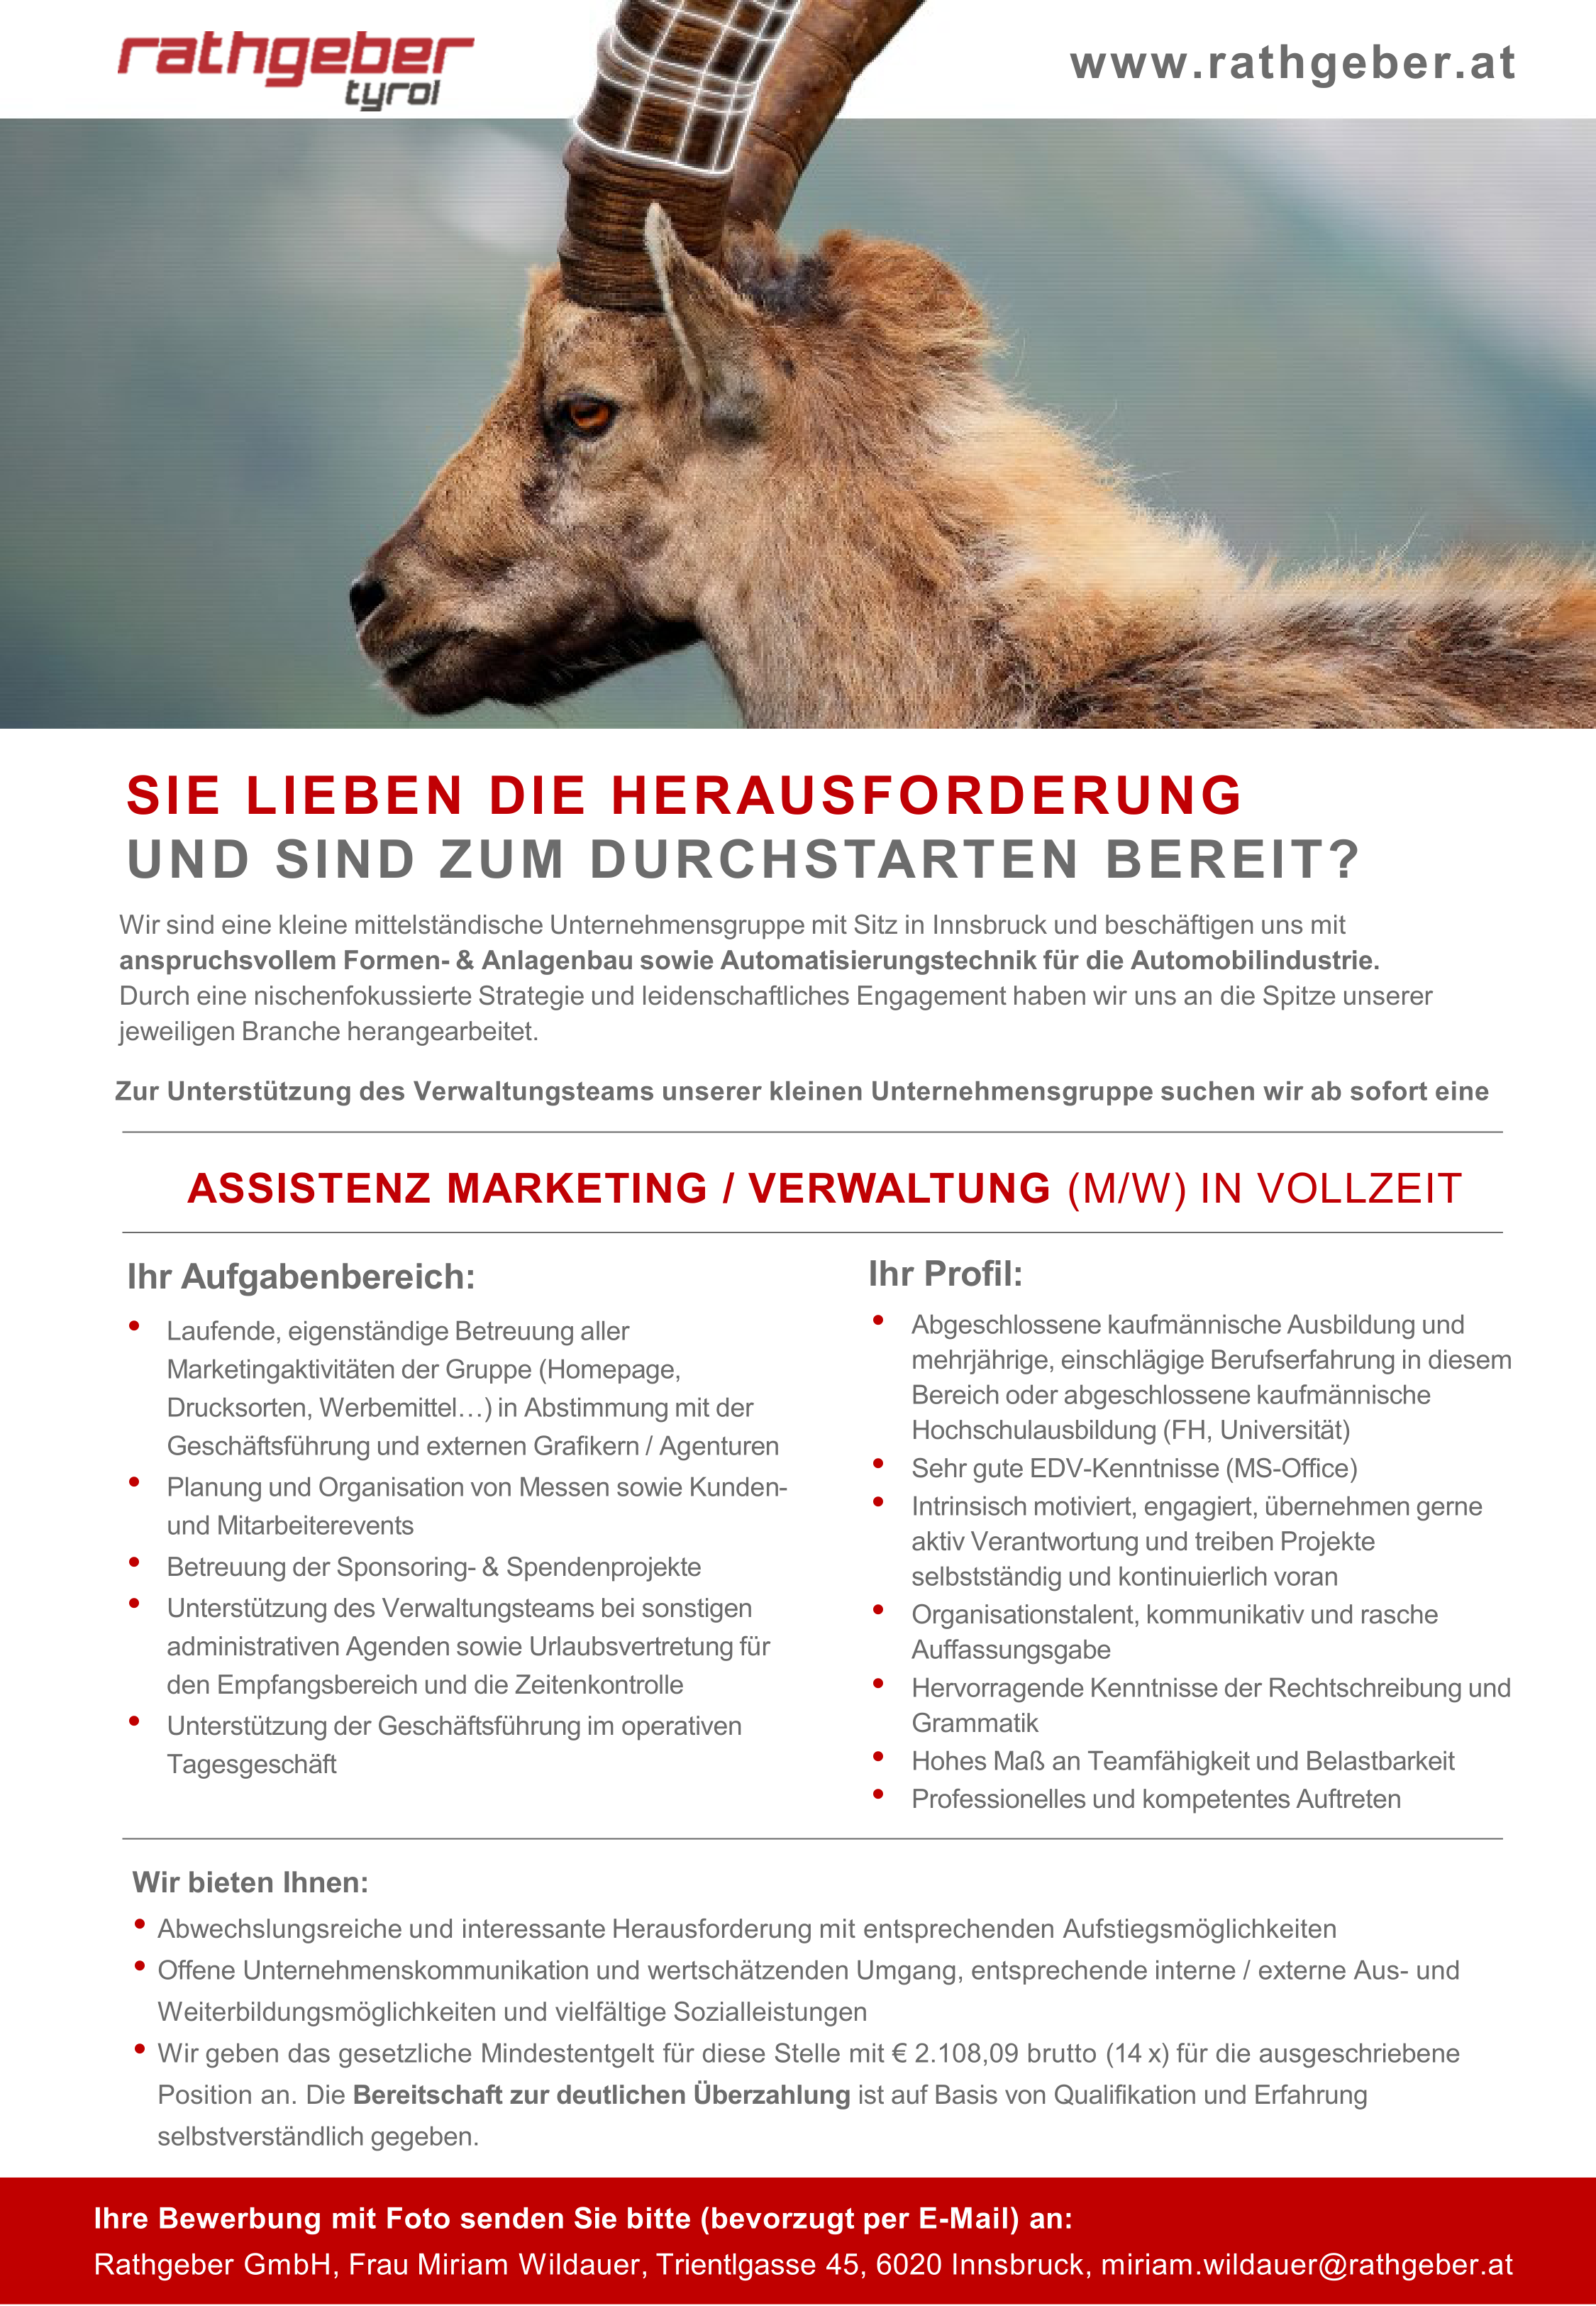 ASSISTENZ MARKETING / VERWALTUNG (m/w)